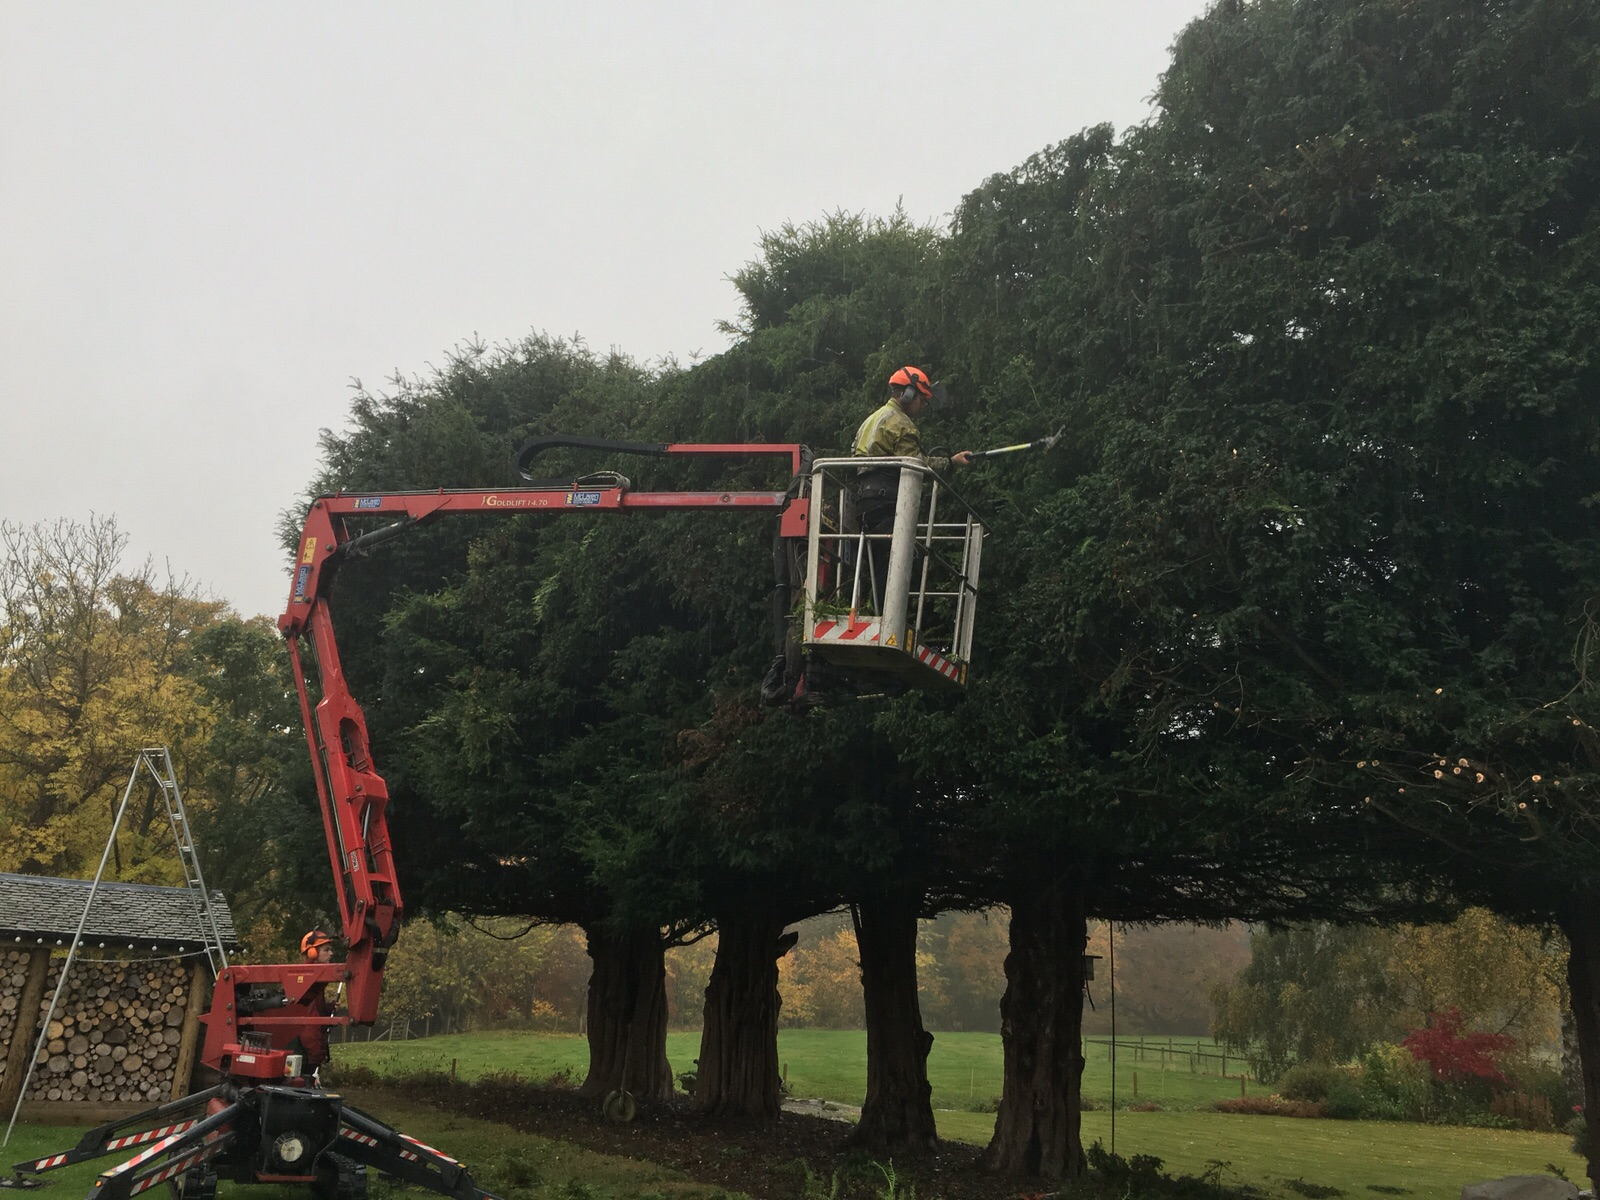 JR Schad Tree Surgeons using a cherry picker for crown thinning and crown lifting of trees